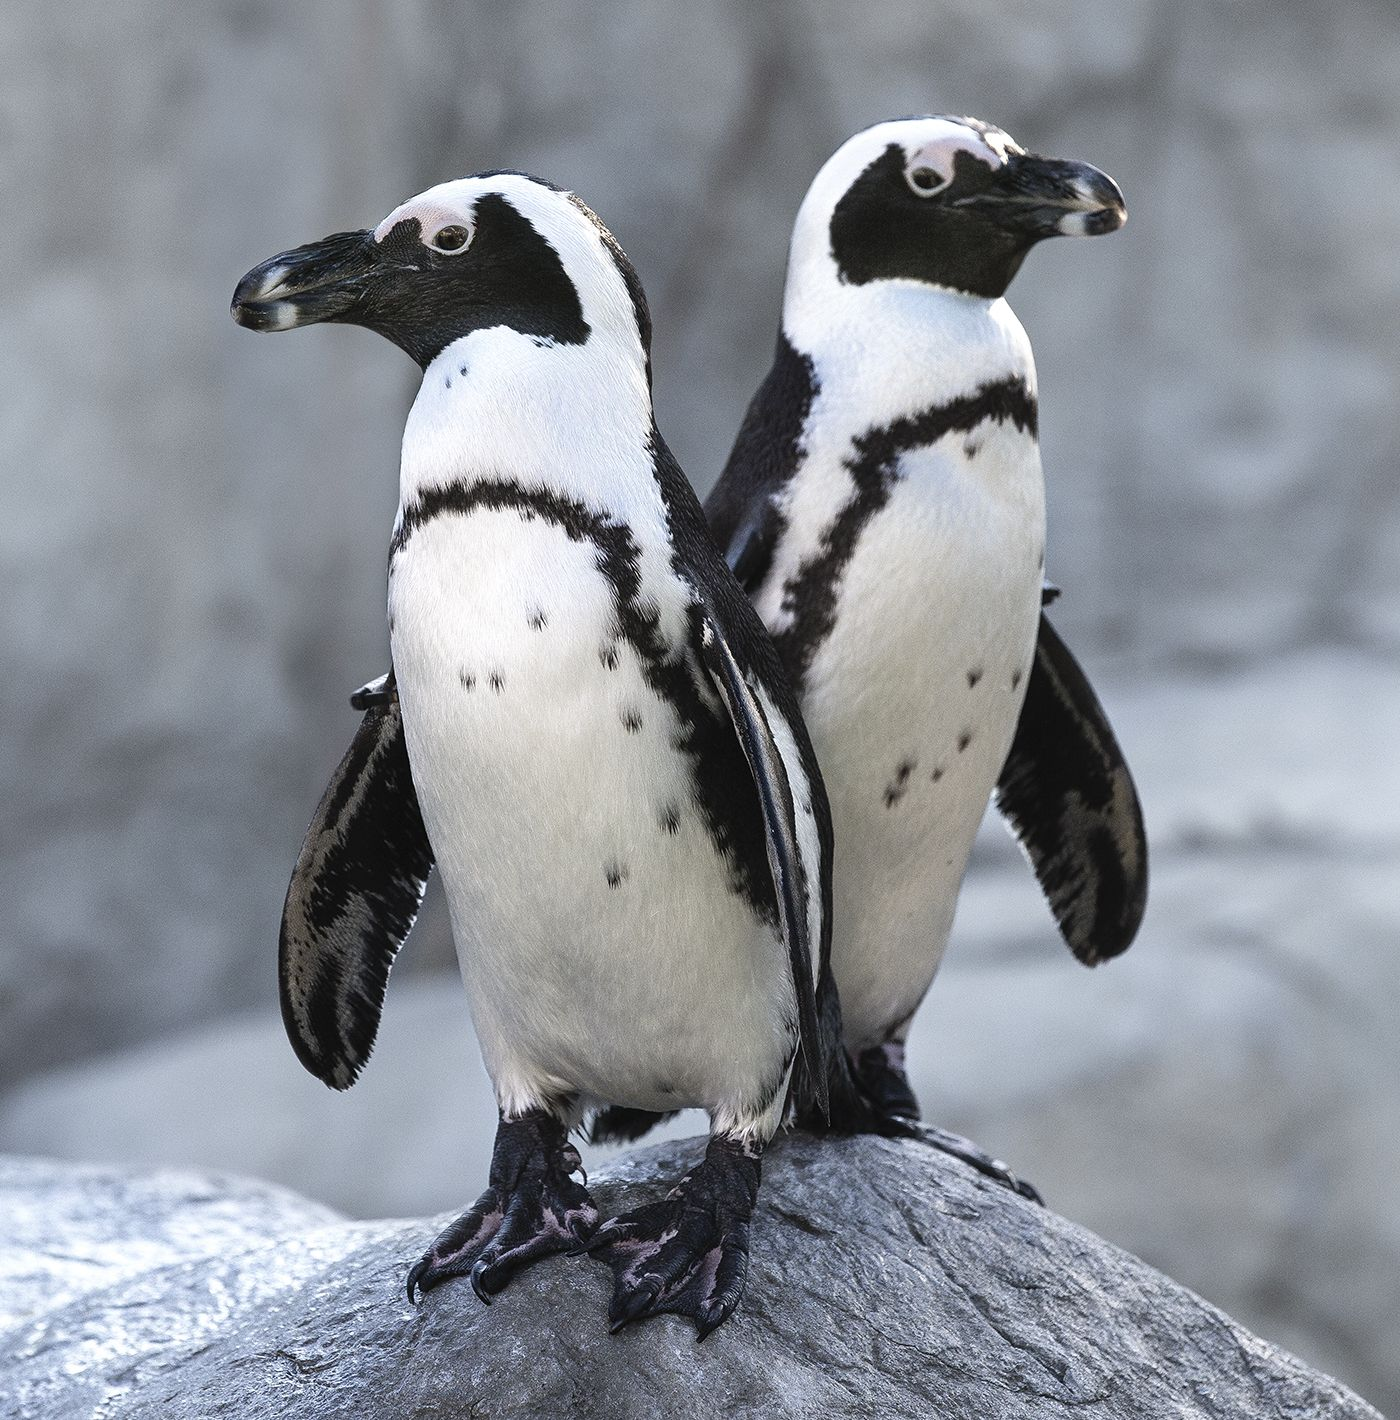 The Endangered African Penguin Is A Warm Weather Species Found Along South Africa S Coastline